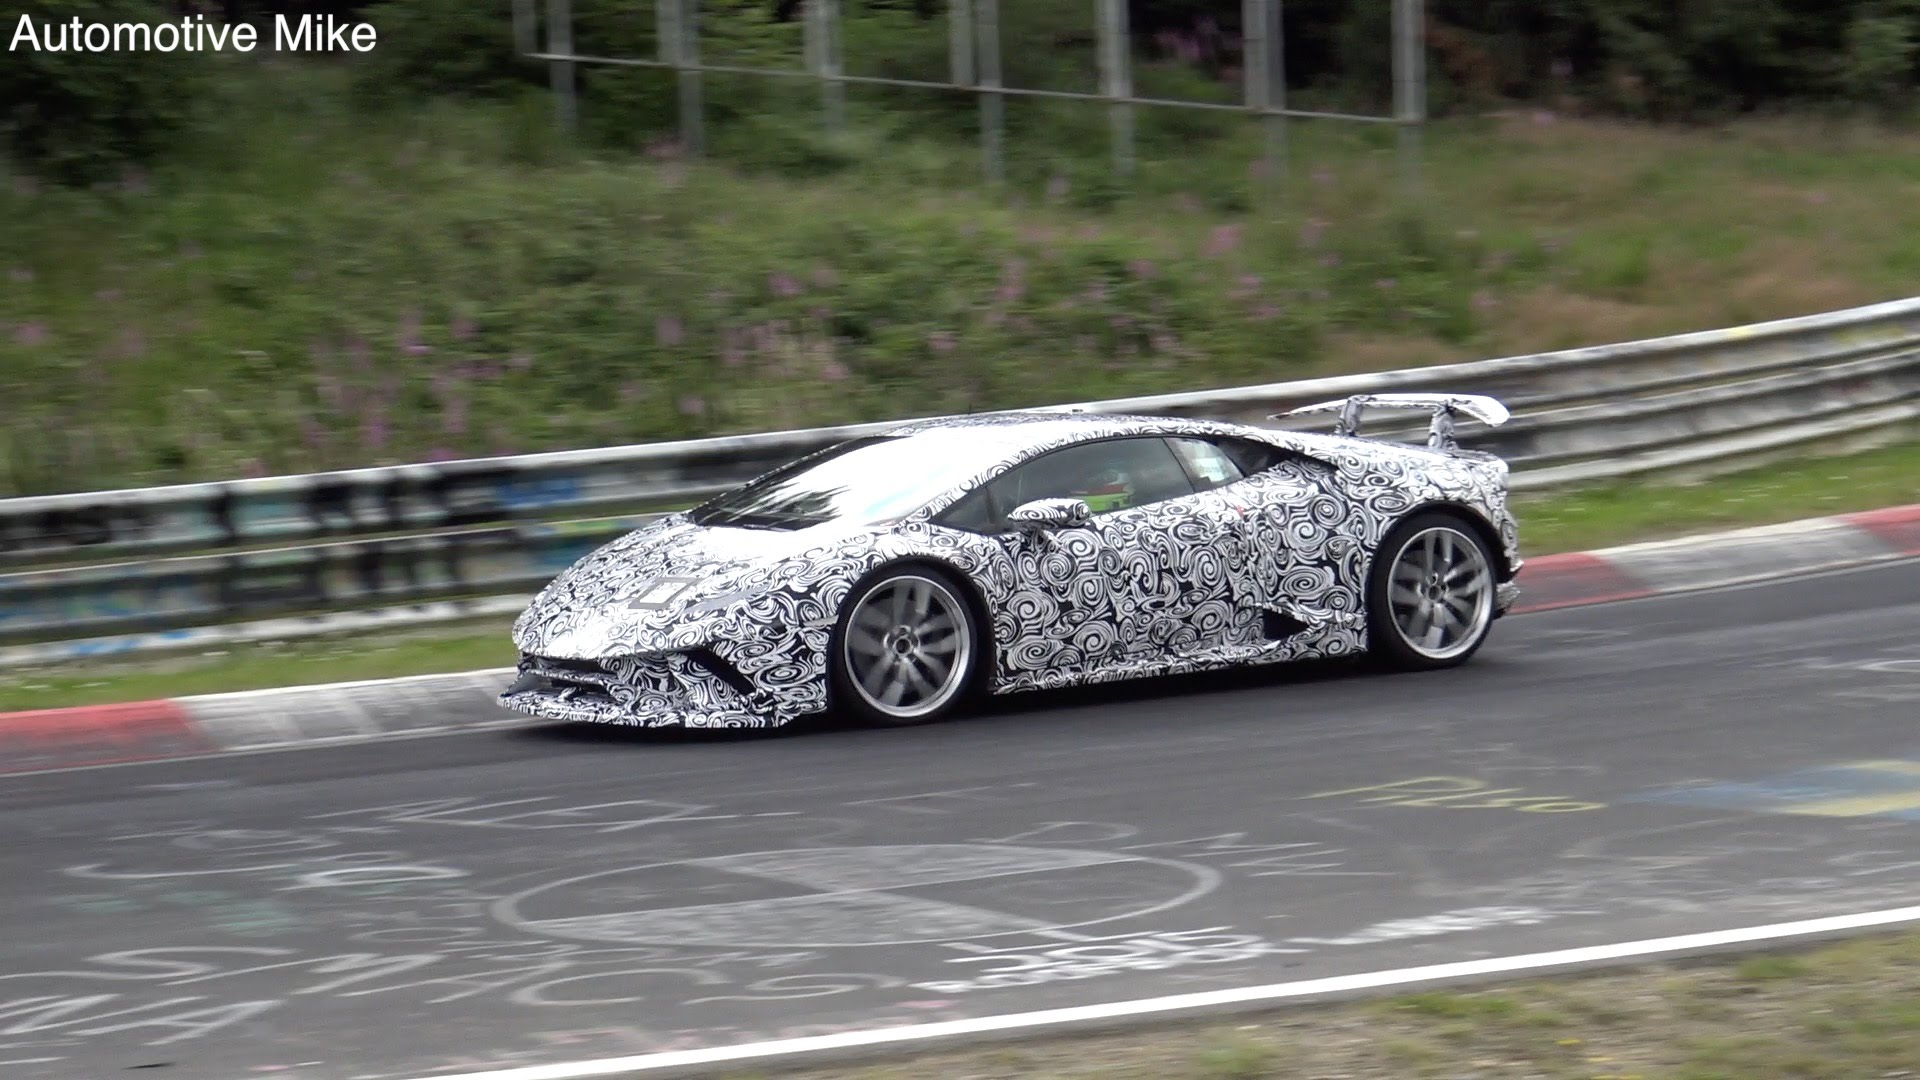 First Glimpse - 2018 Lamborghini Huracan Superlegerra